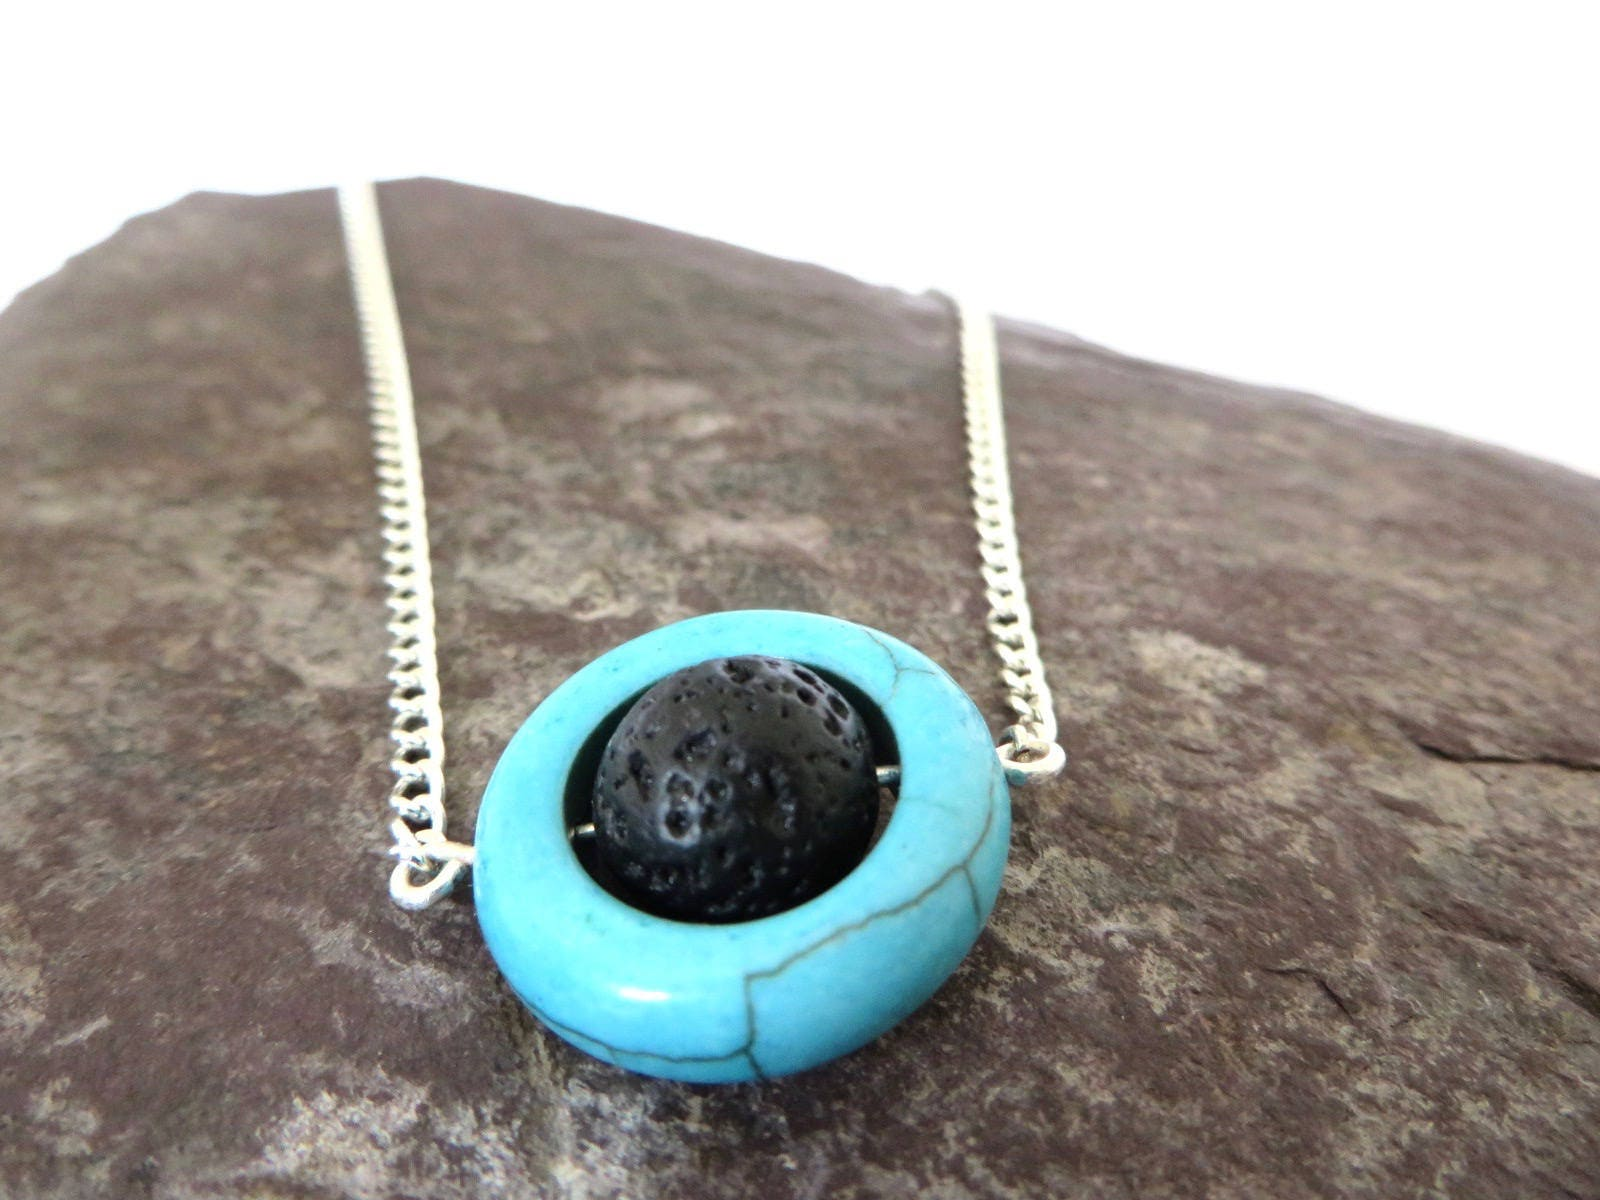 Turquoise jewelry Essential oil diffuser necklace Aromatherapy jewelry Festival jewellery boho jewelry gift for her yoga jewellery UK